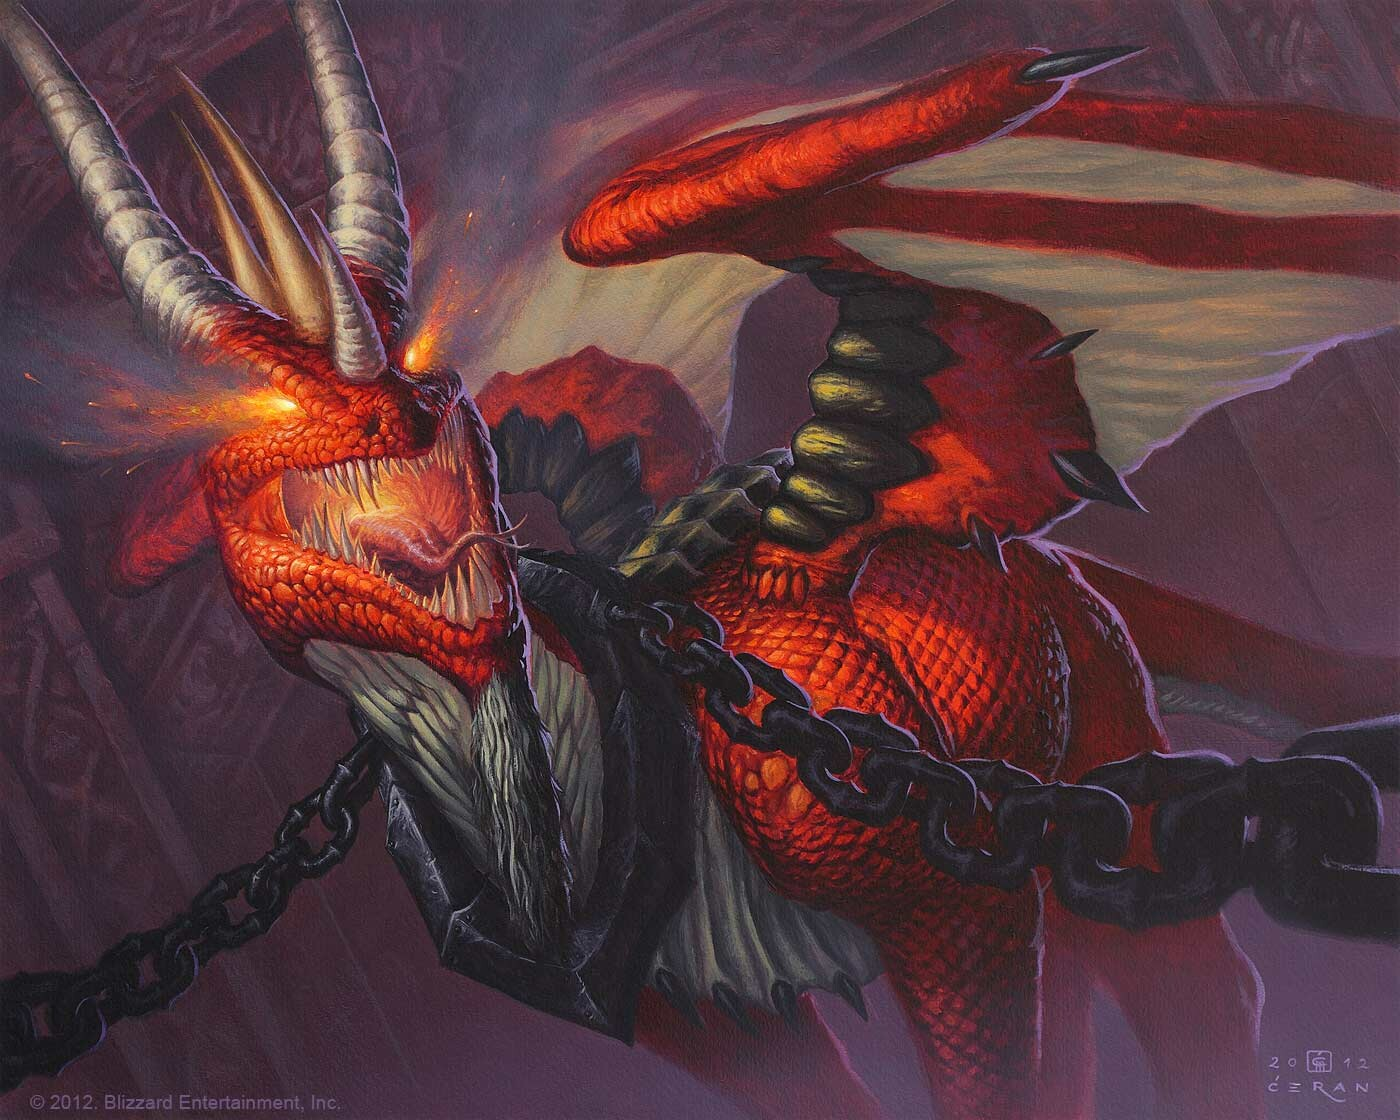 """Enslaved Red Dragon"", Milivoj Ćeran 2012 -  40 x 50 cm  - acrylic and airbrush on paper - © 2012 Blizzard Entertainment, Inc. - private collection"